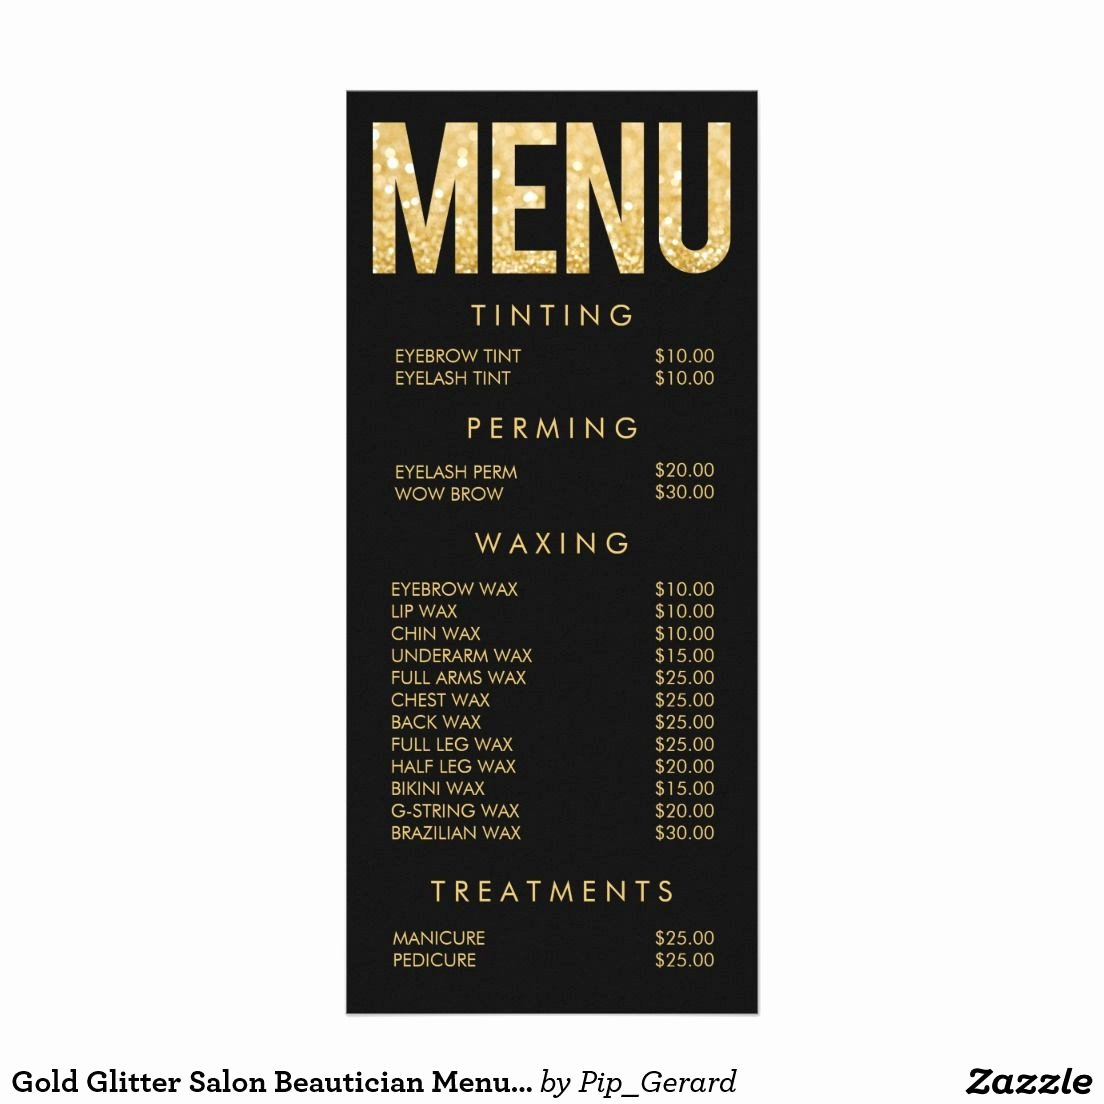 Gold Glitter Salon Beautician Menu Price List